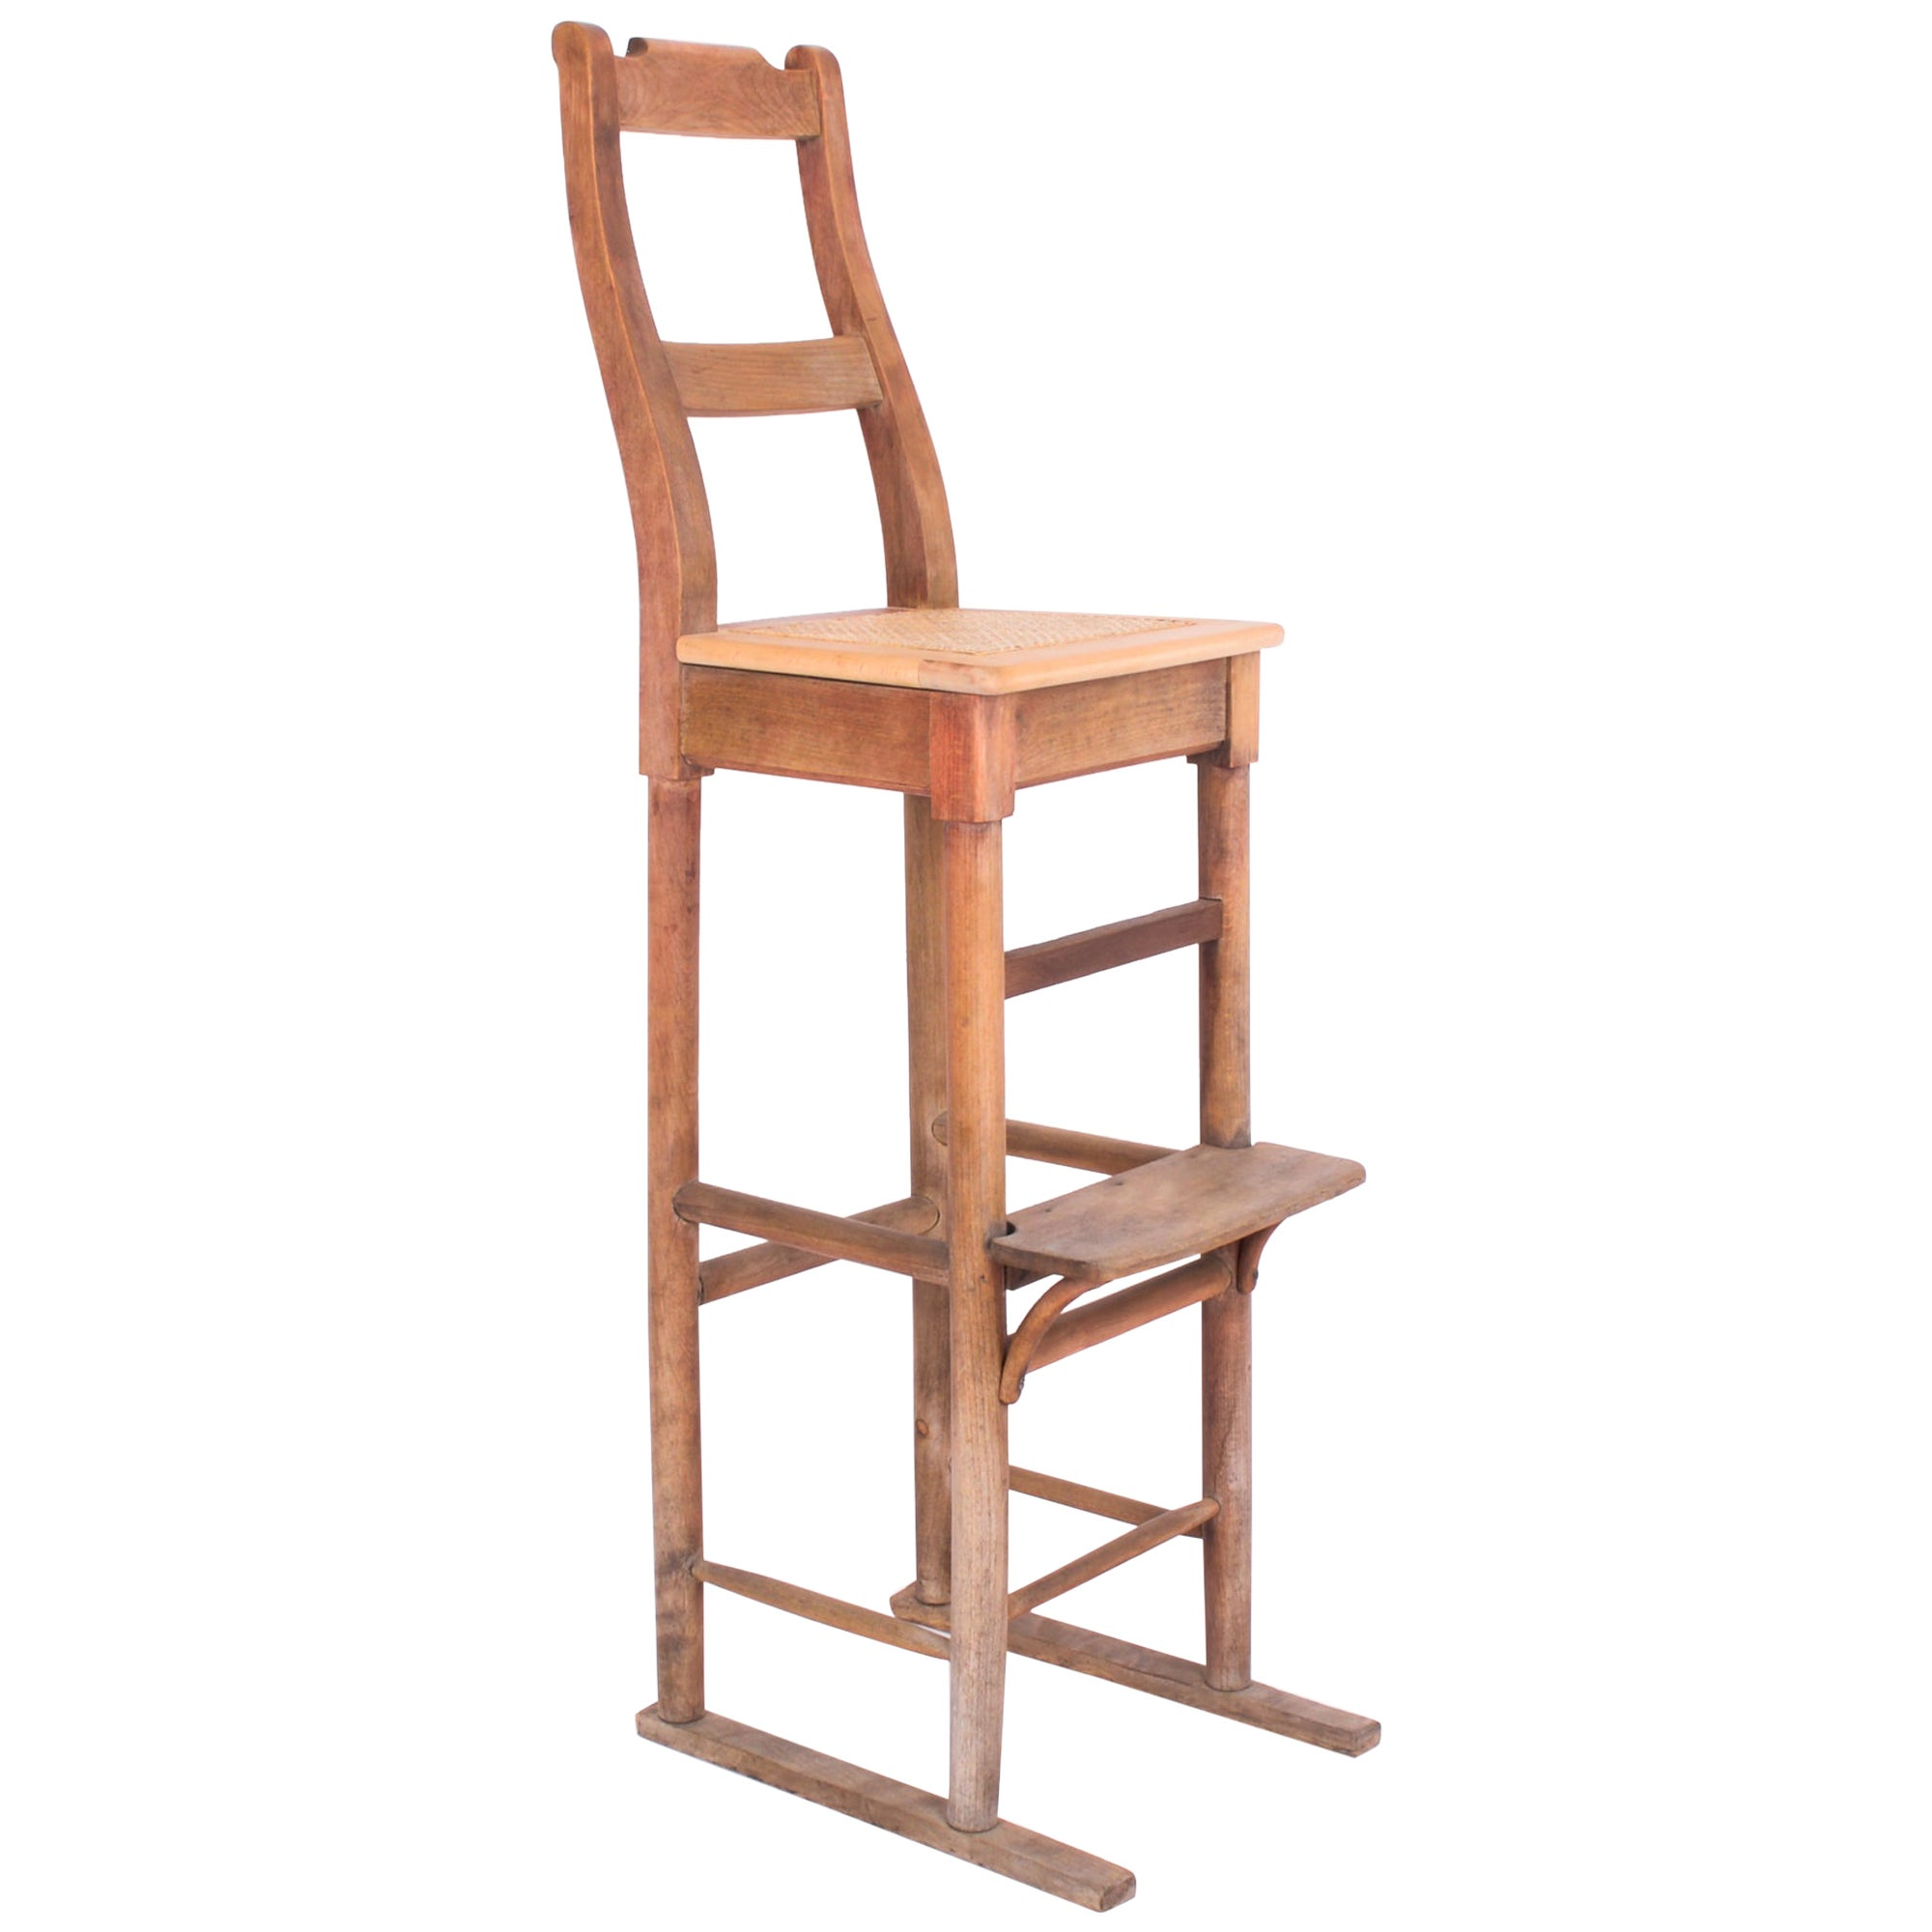 1950s French Country Tall Wooden Chair